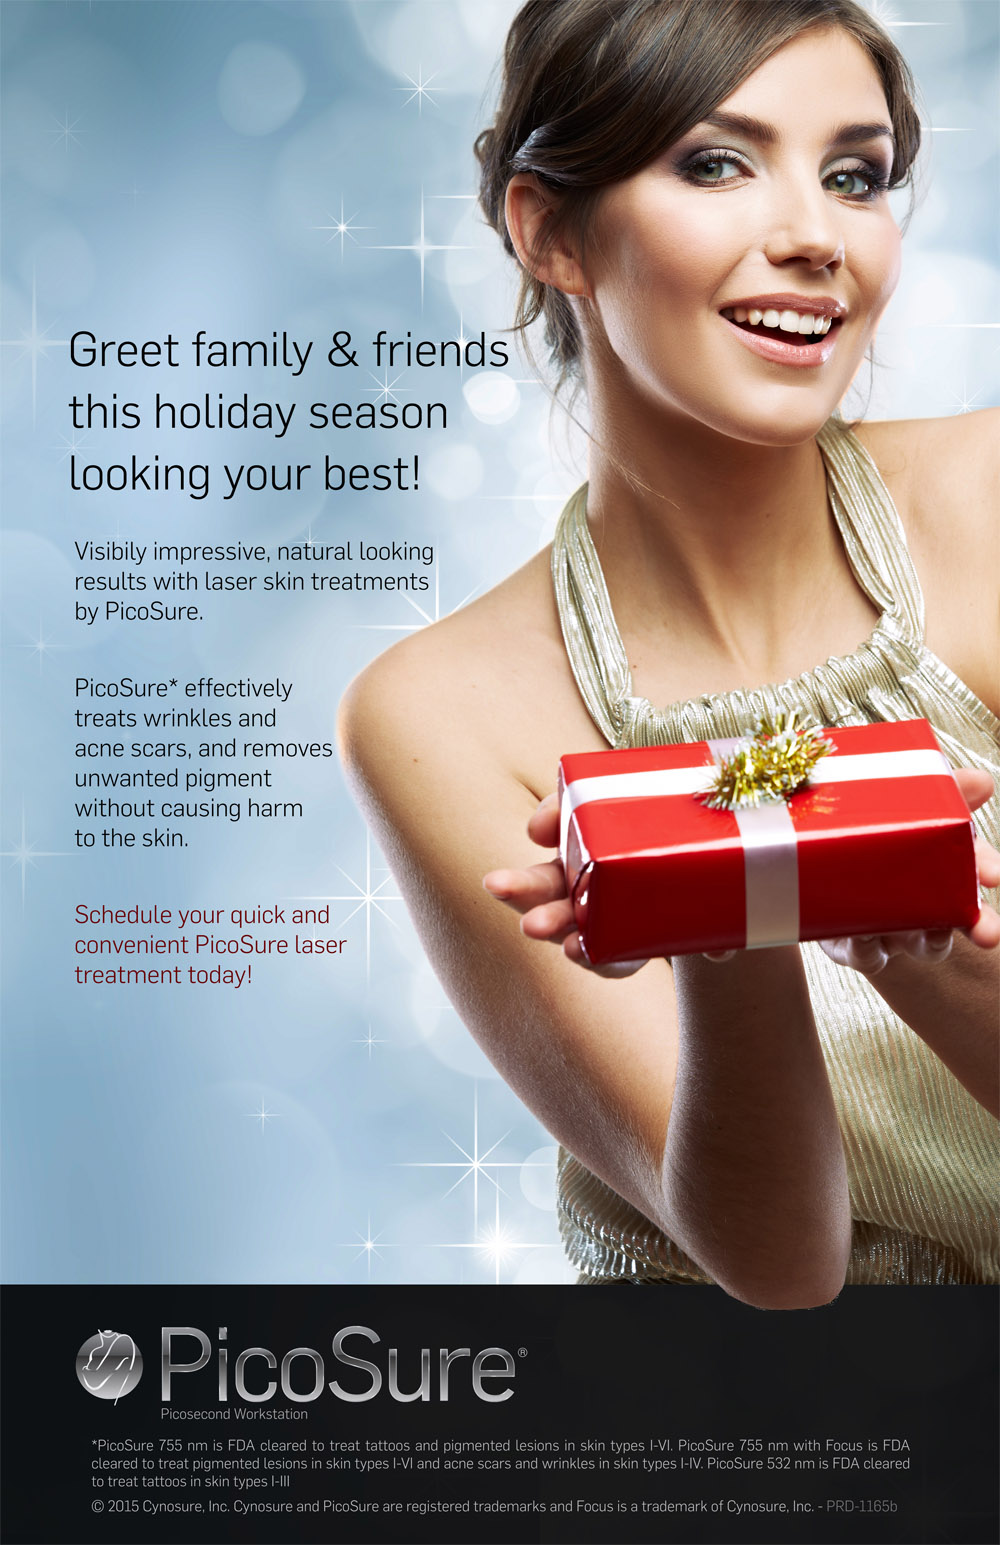 PicoSure Holiday Promotion